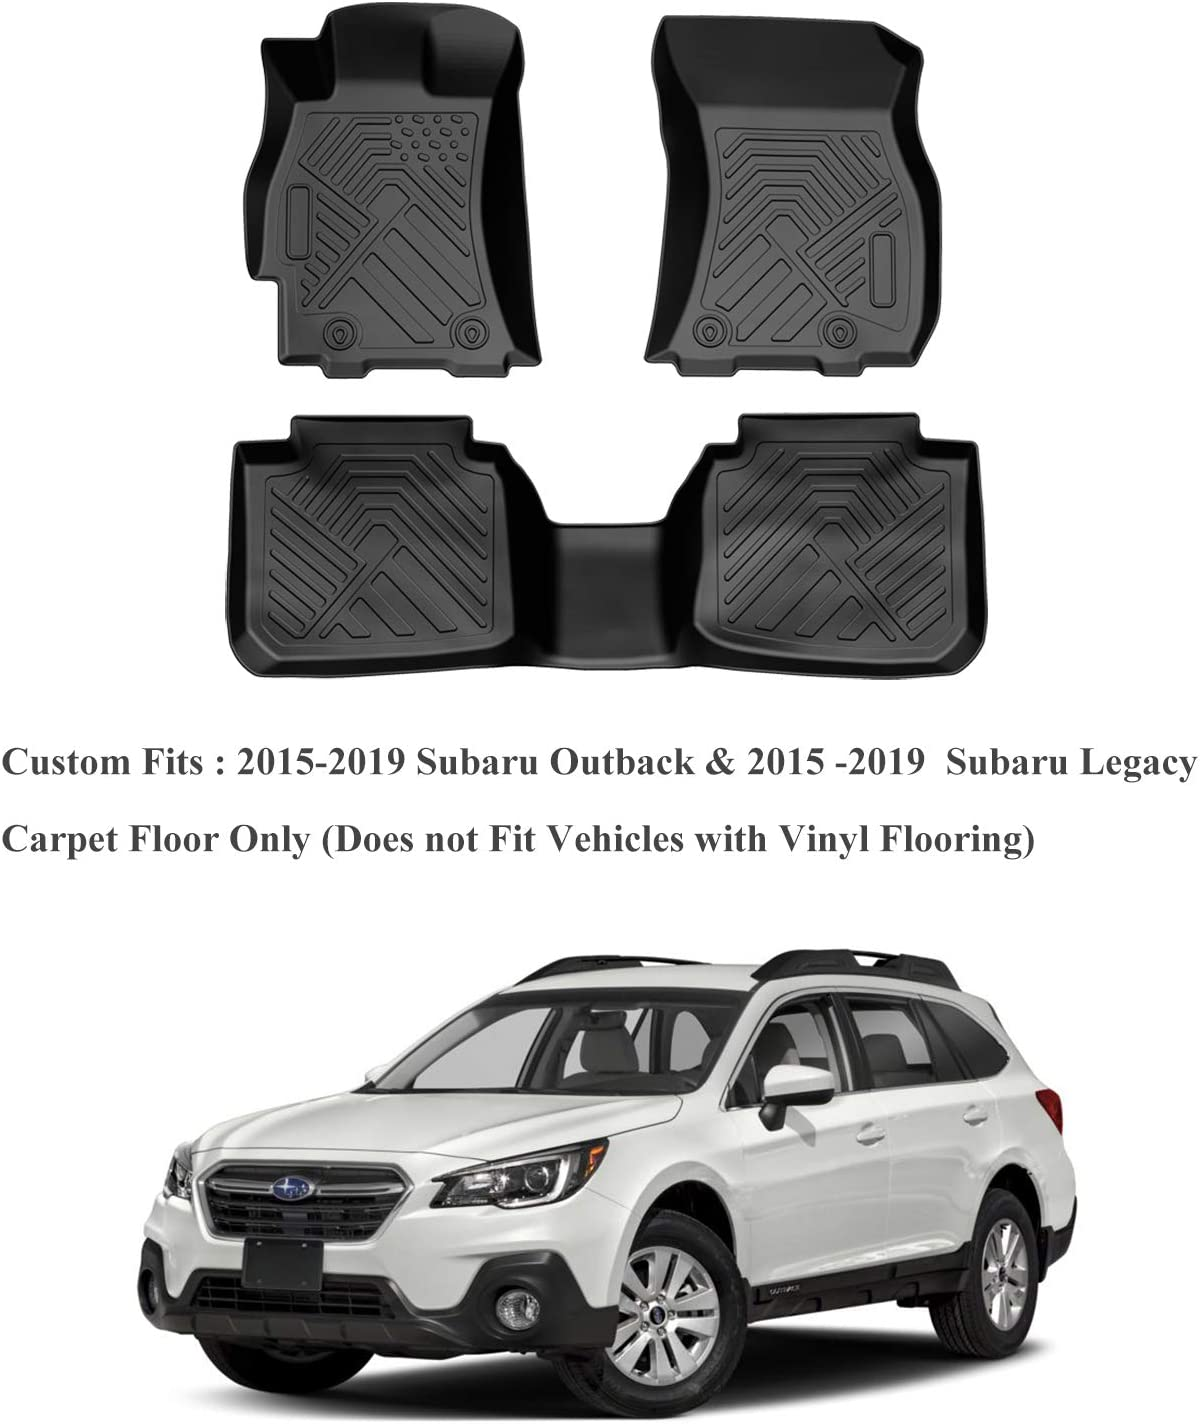 Waterproof Floor Liners Custom Fit for 2015-2019 Ford Escape,1st and 2nd Row Included-All Weather Heavy Duty Rubber Floor Protection,Black COOLSHARK Ford Escape Floor Mats